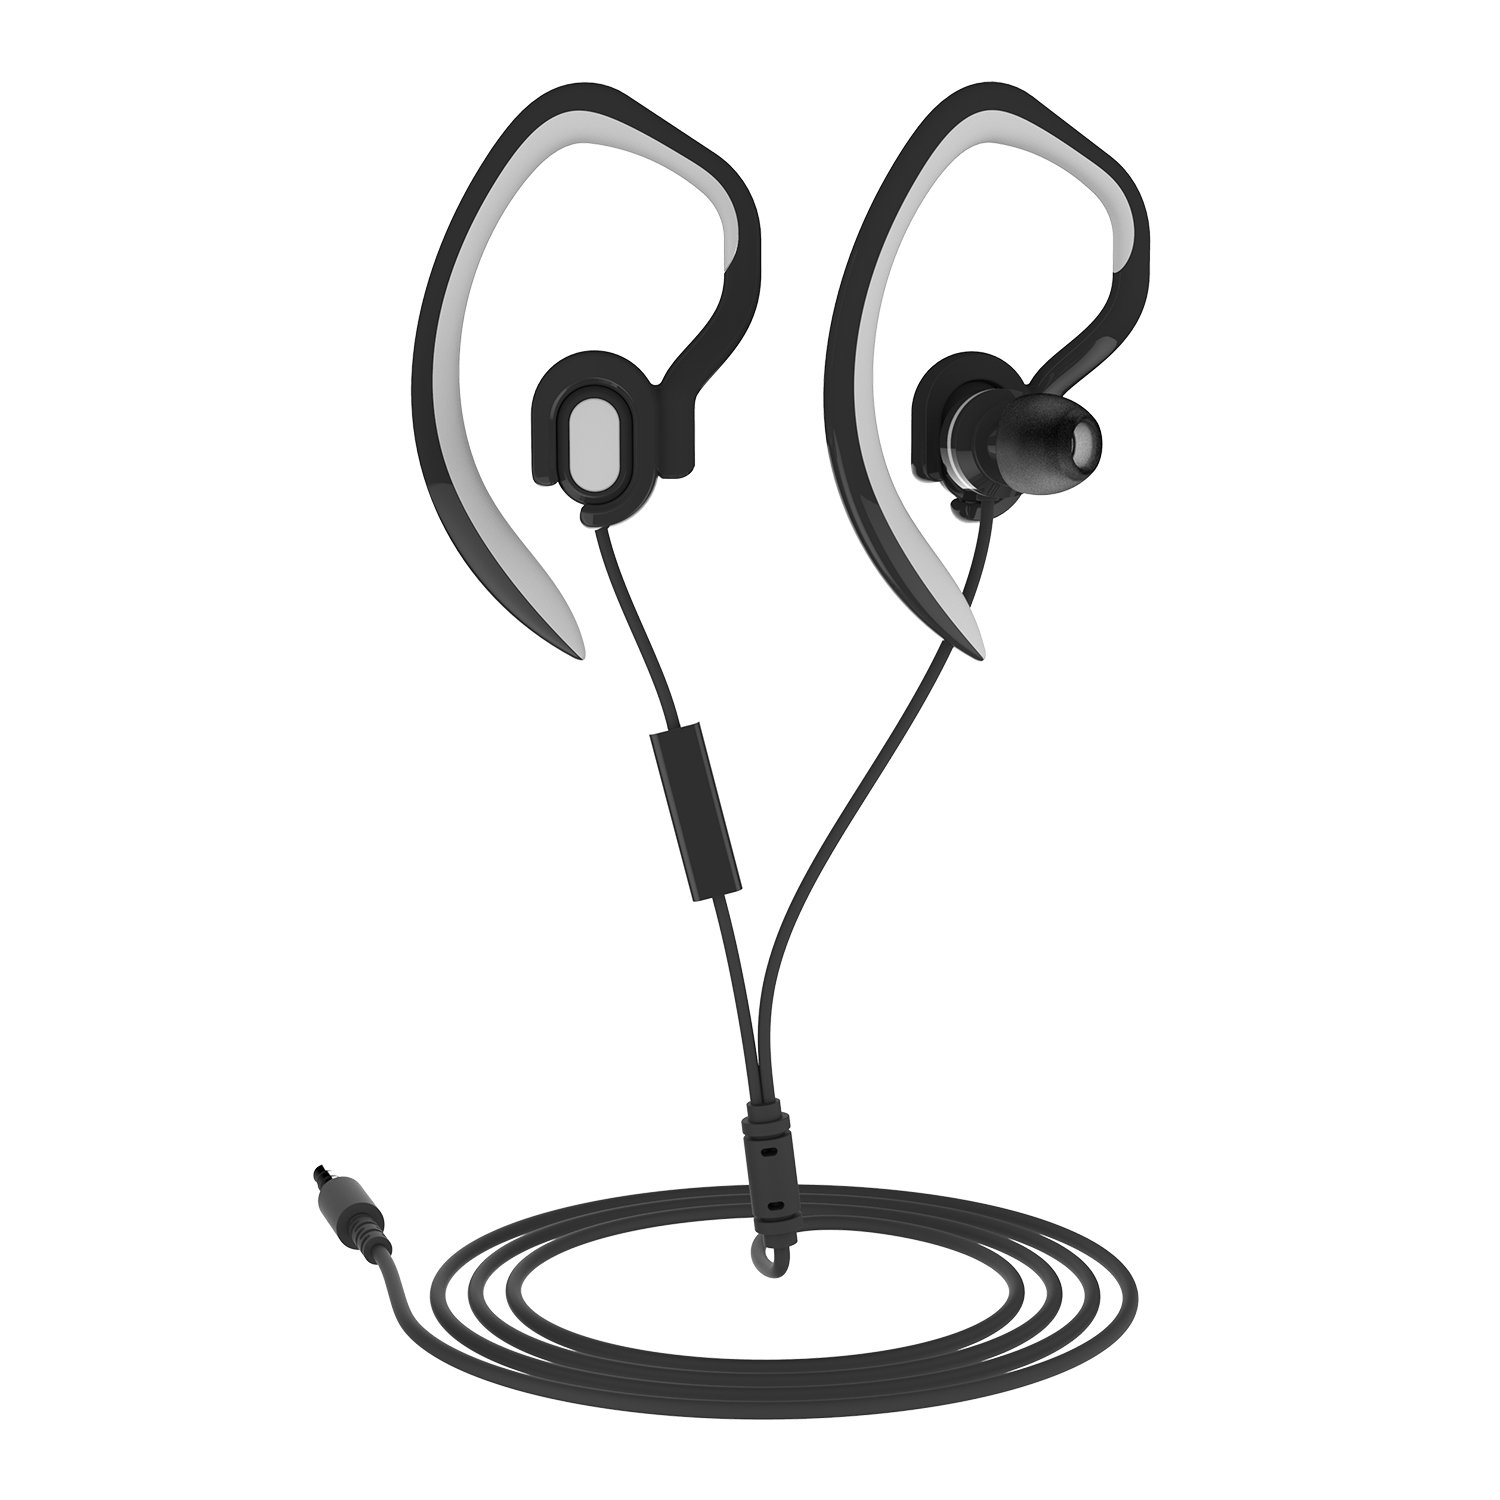 fb9e75ea223 Get Quotations · Sports Earhook Headphones In Ear Headphones workout  headphones Waterproof Earphone Stereo 3.5mm Jack Headphone with